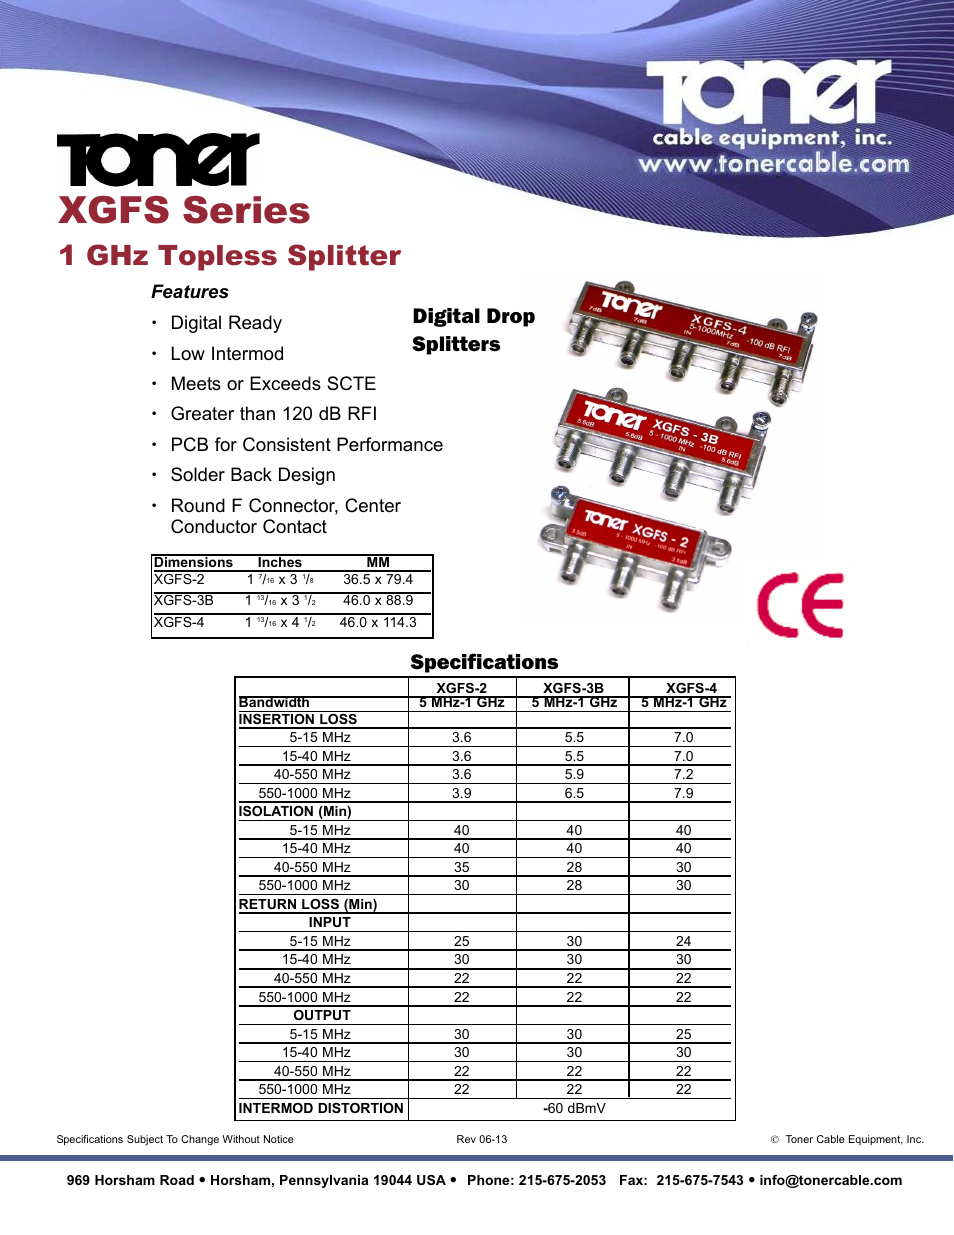 Toner Cable XGFS-2 2 Way 1 GHz Topless Splitters User Manual